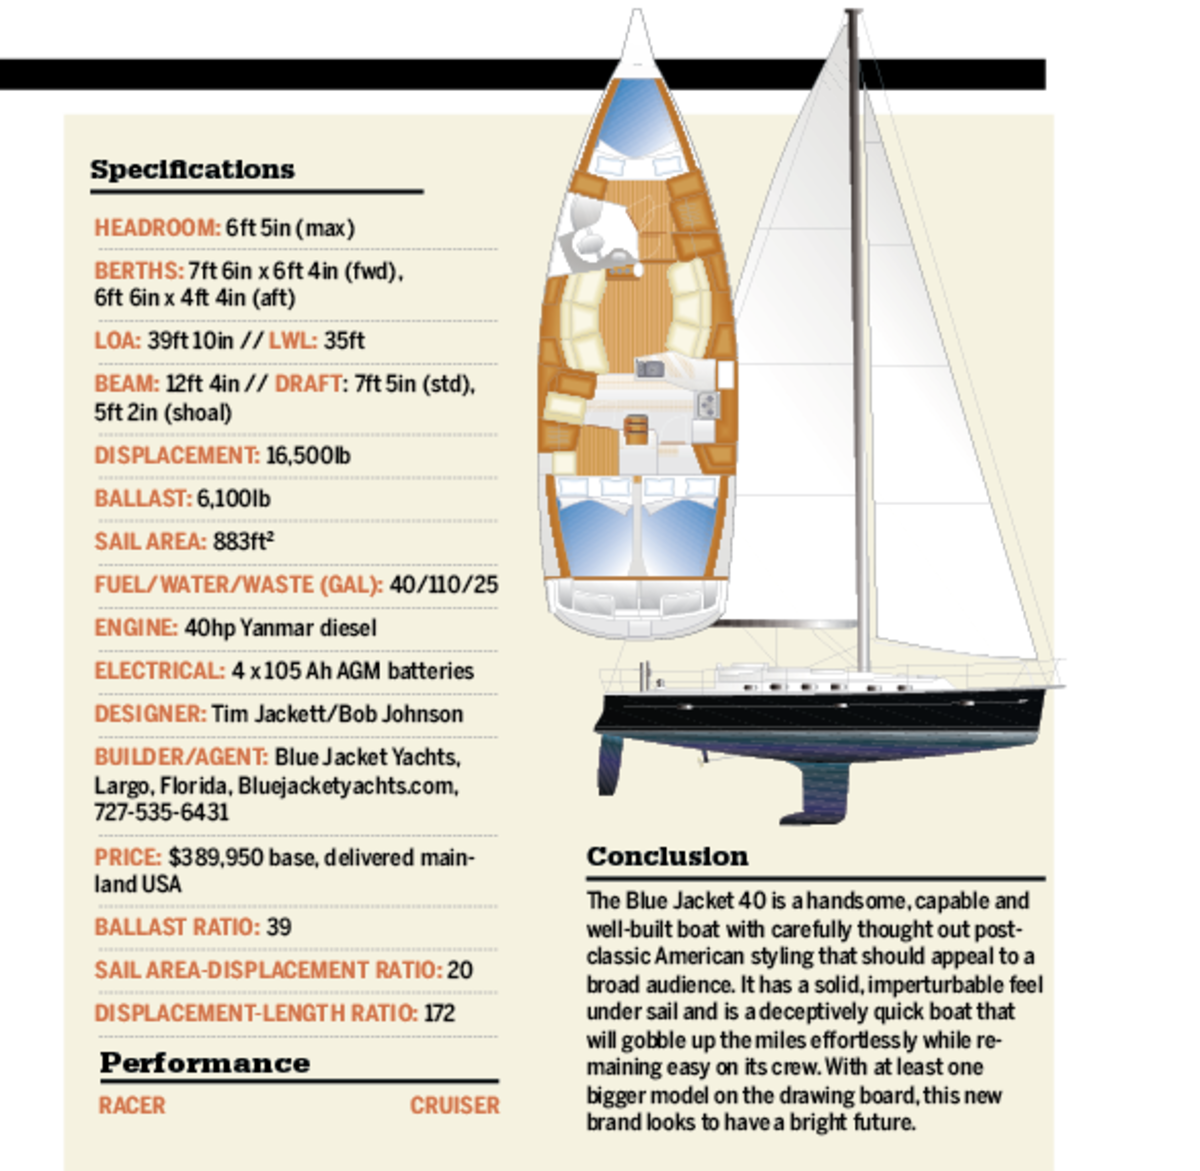 Blue Jacket 40 Specifications